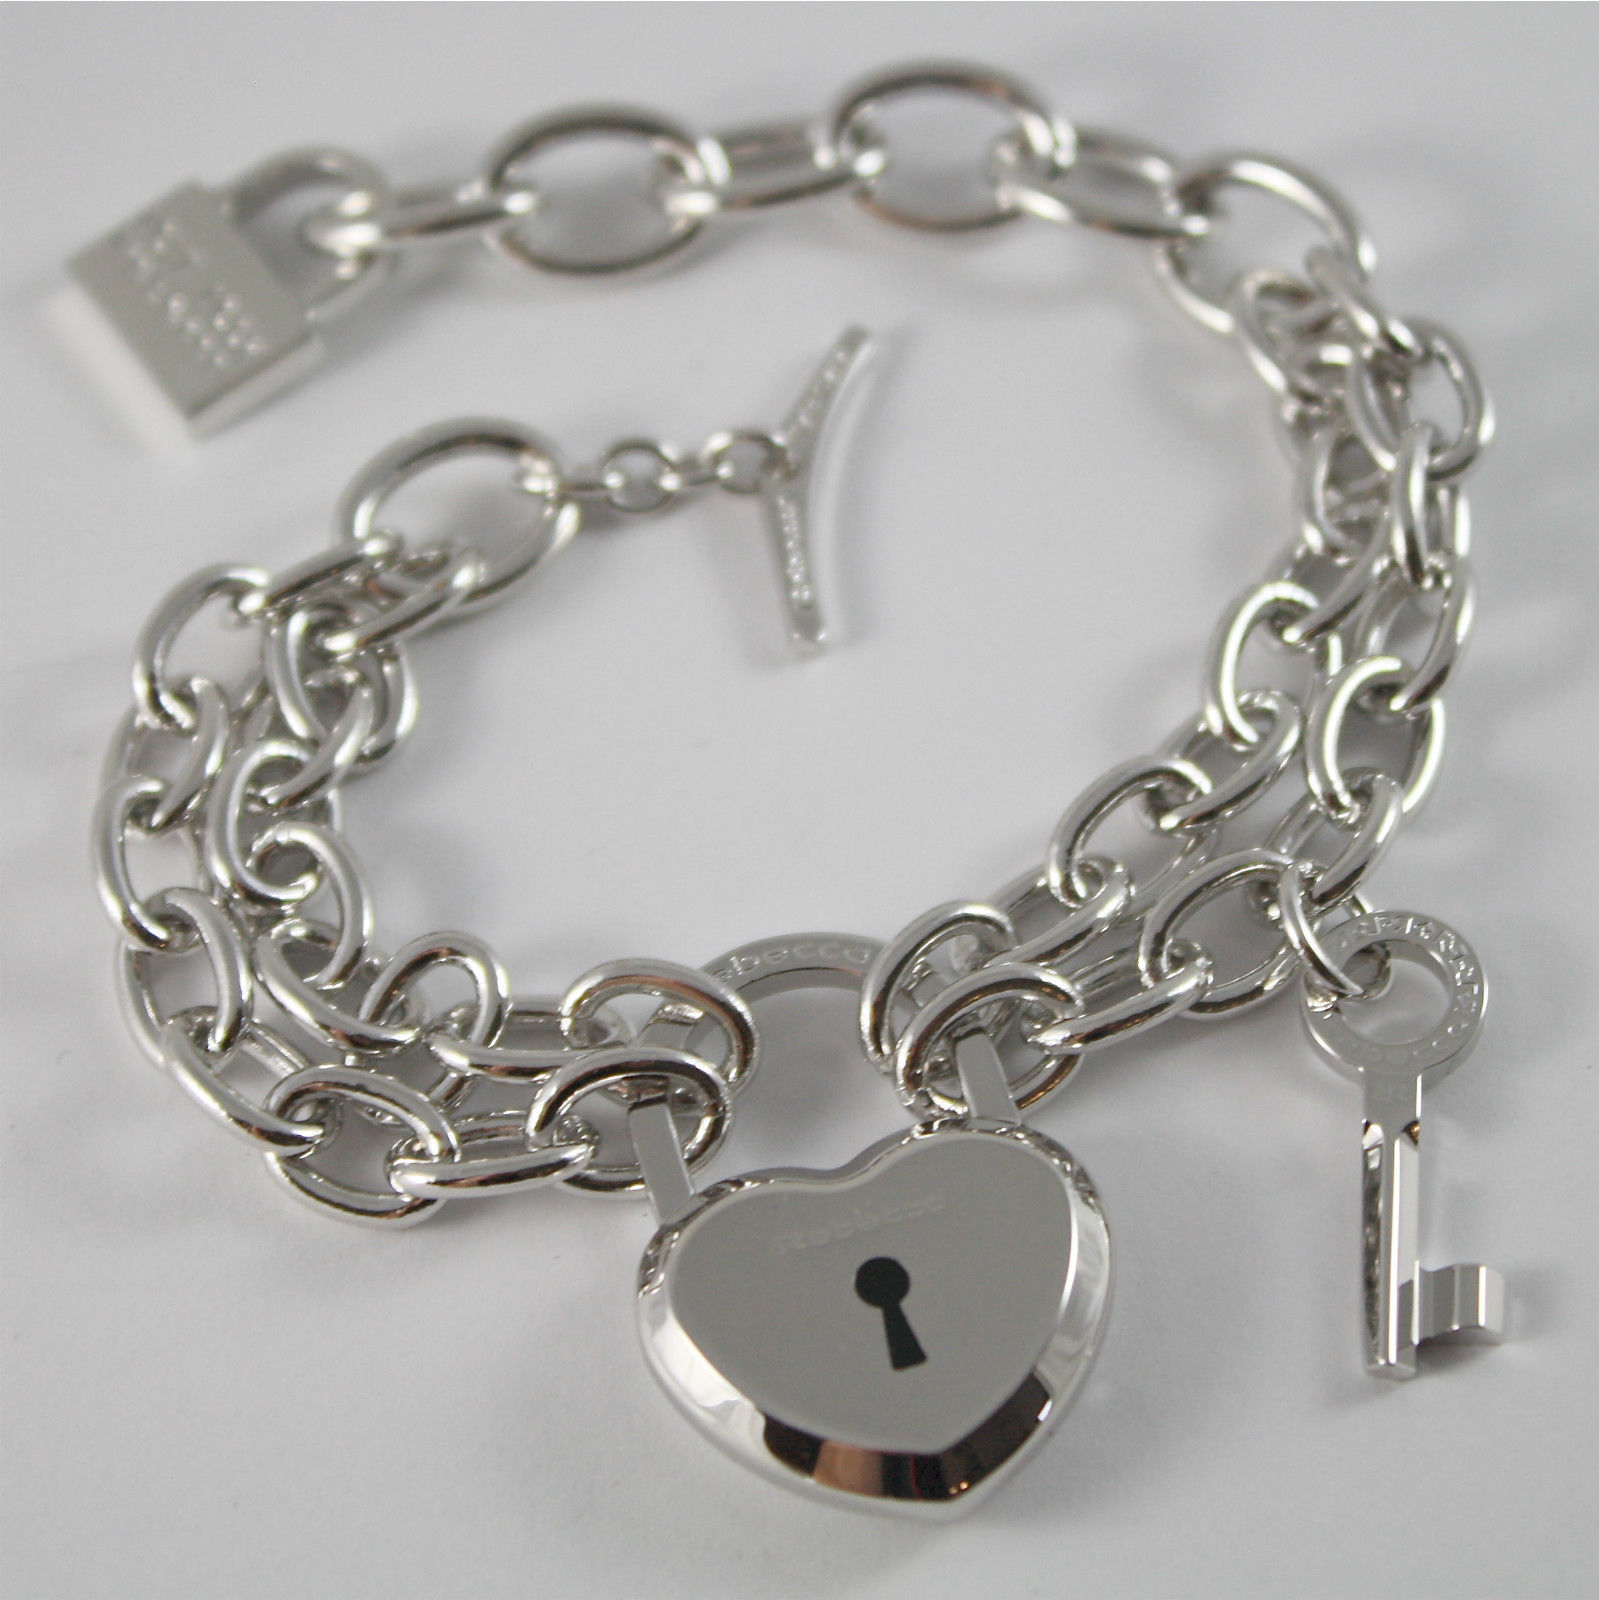 WHITE GOLD PLATED BRONZE REBECCA BRACELET LOVE LOCK BLLBBB24 MADE IN ITALY  7.87